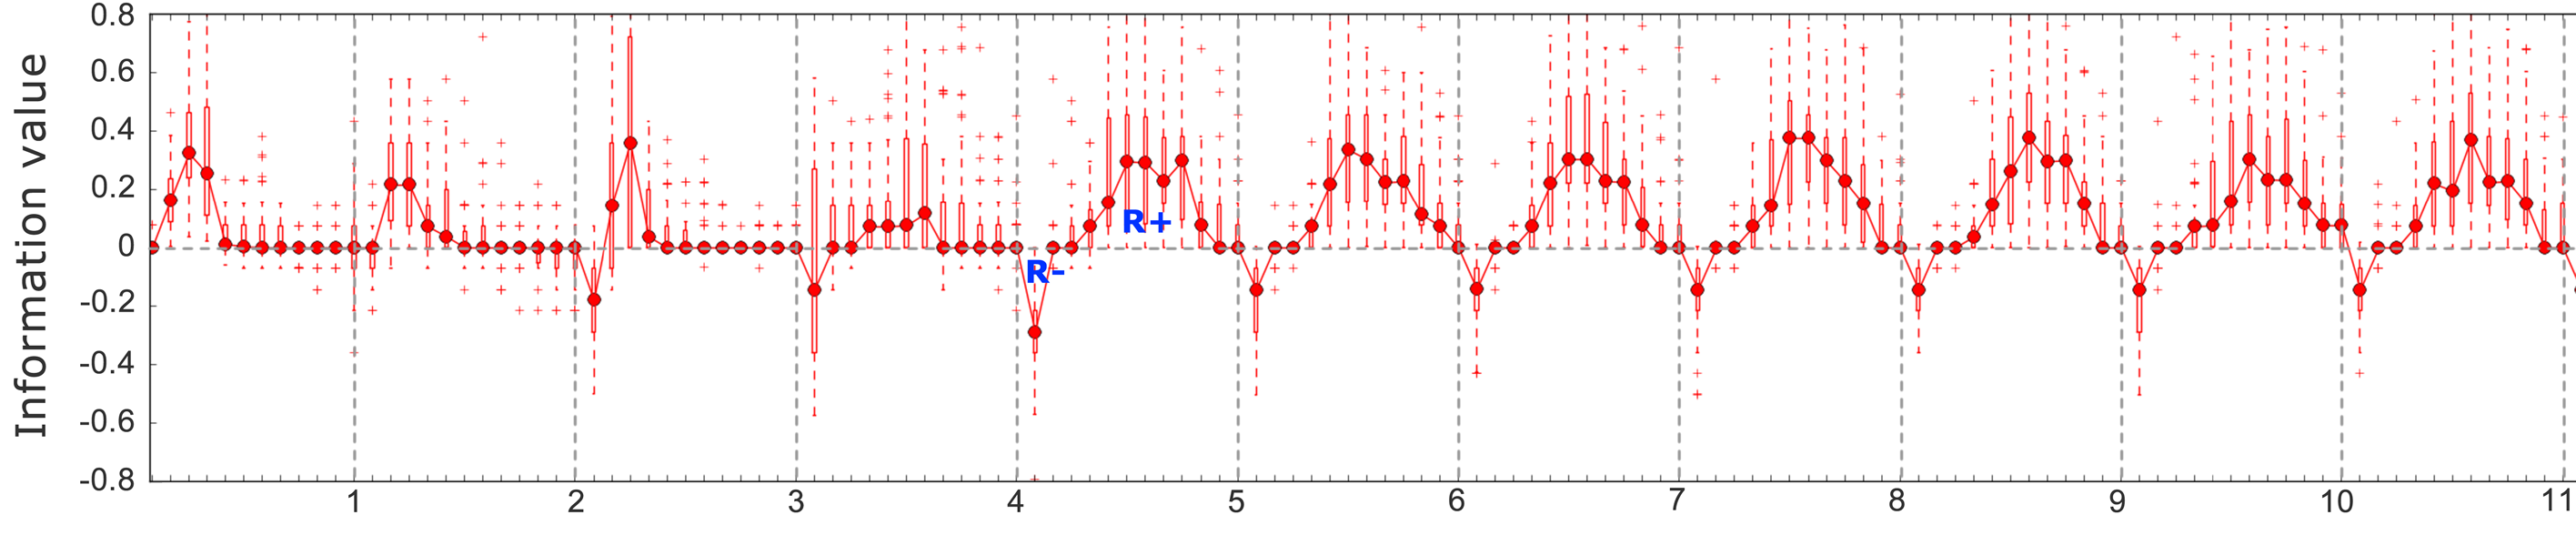 Information flow time series of a foraging robot swarm